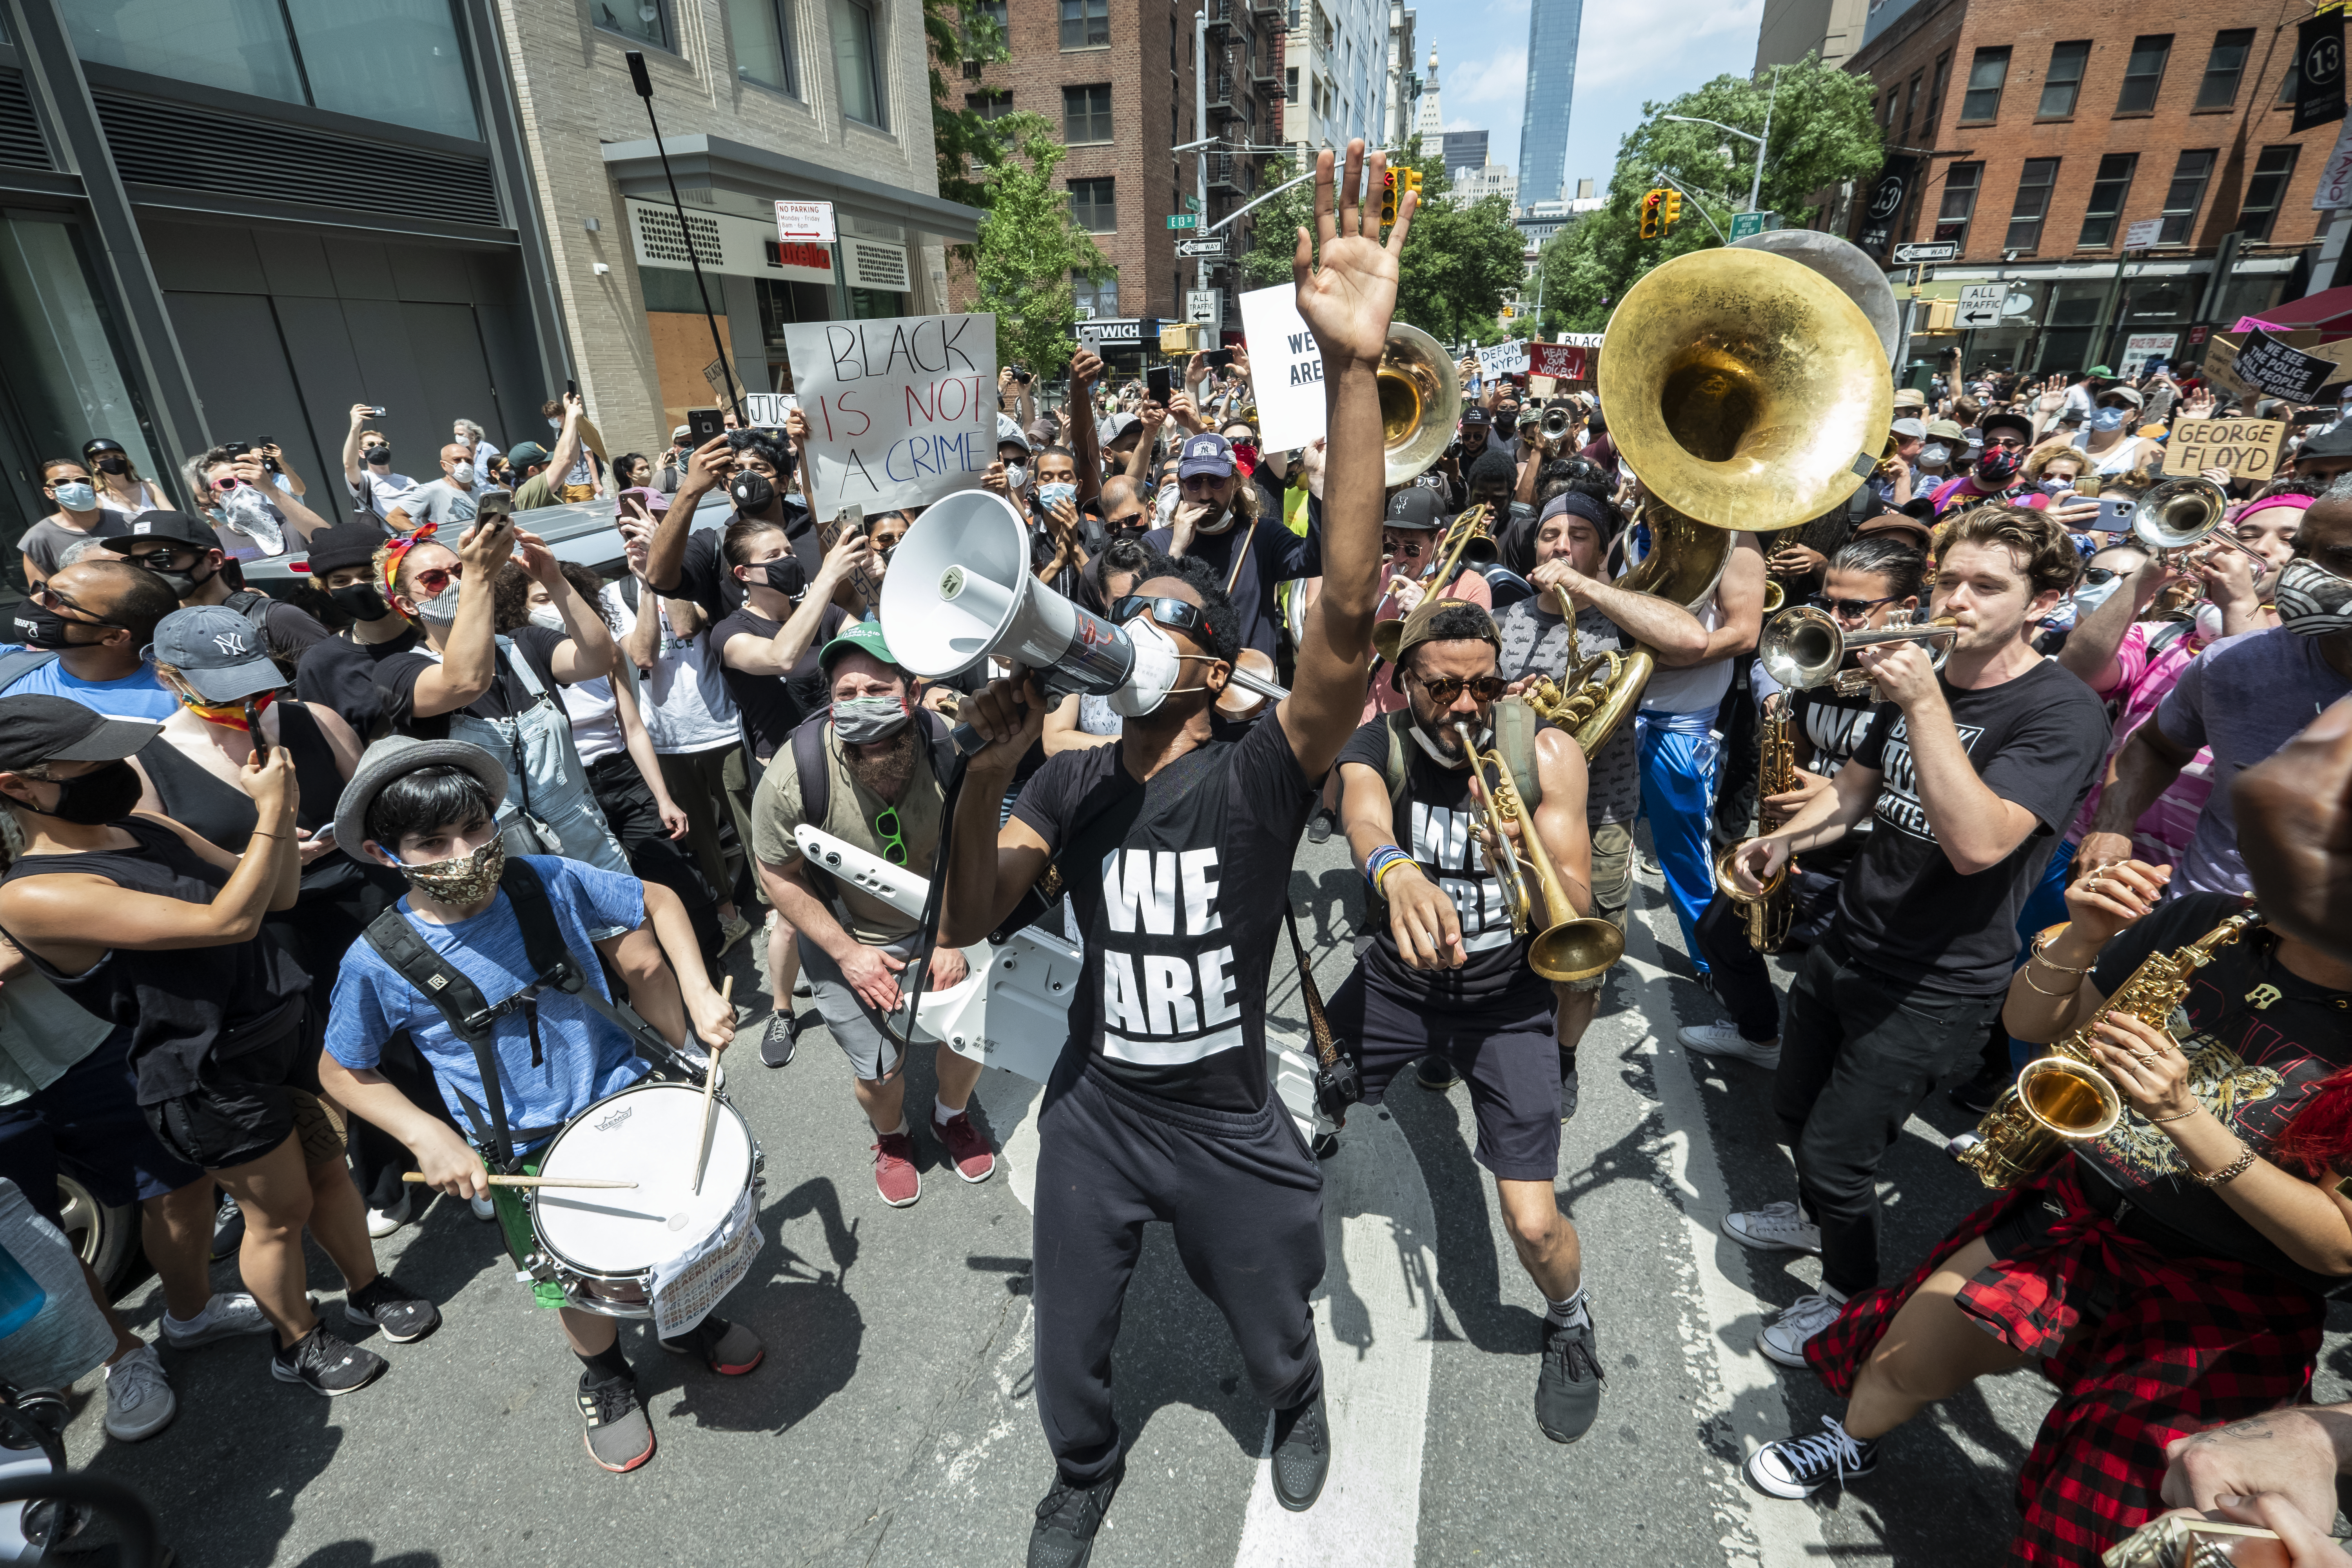 Jon Batiste leads a protest March in Manhattan in June 2020, where he and his band performed  Lift Every Voice and Sing.